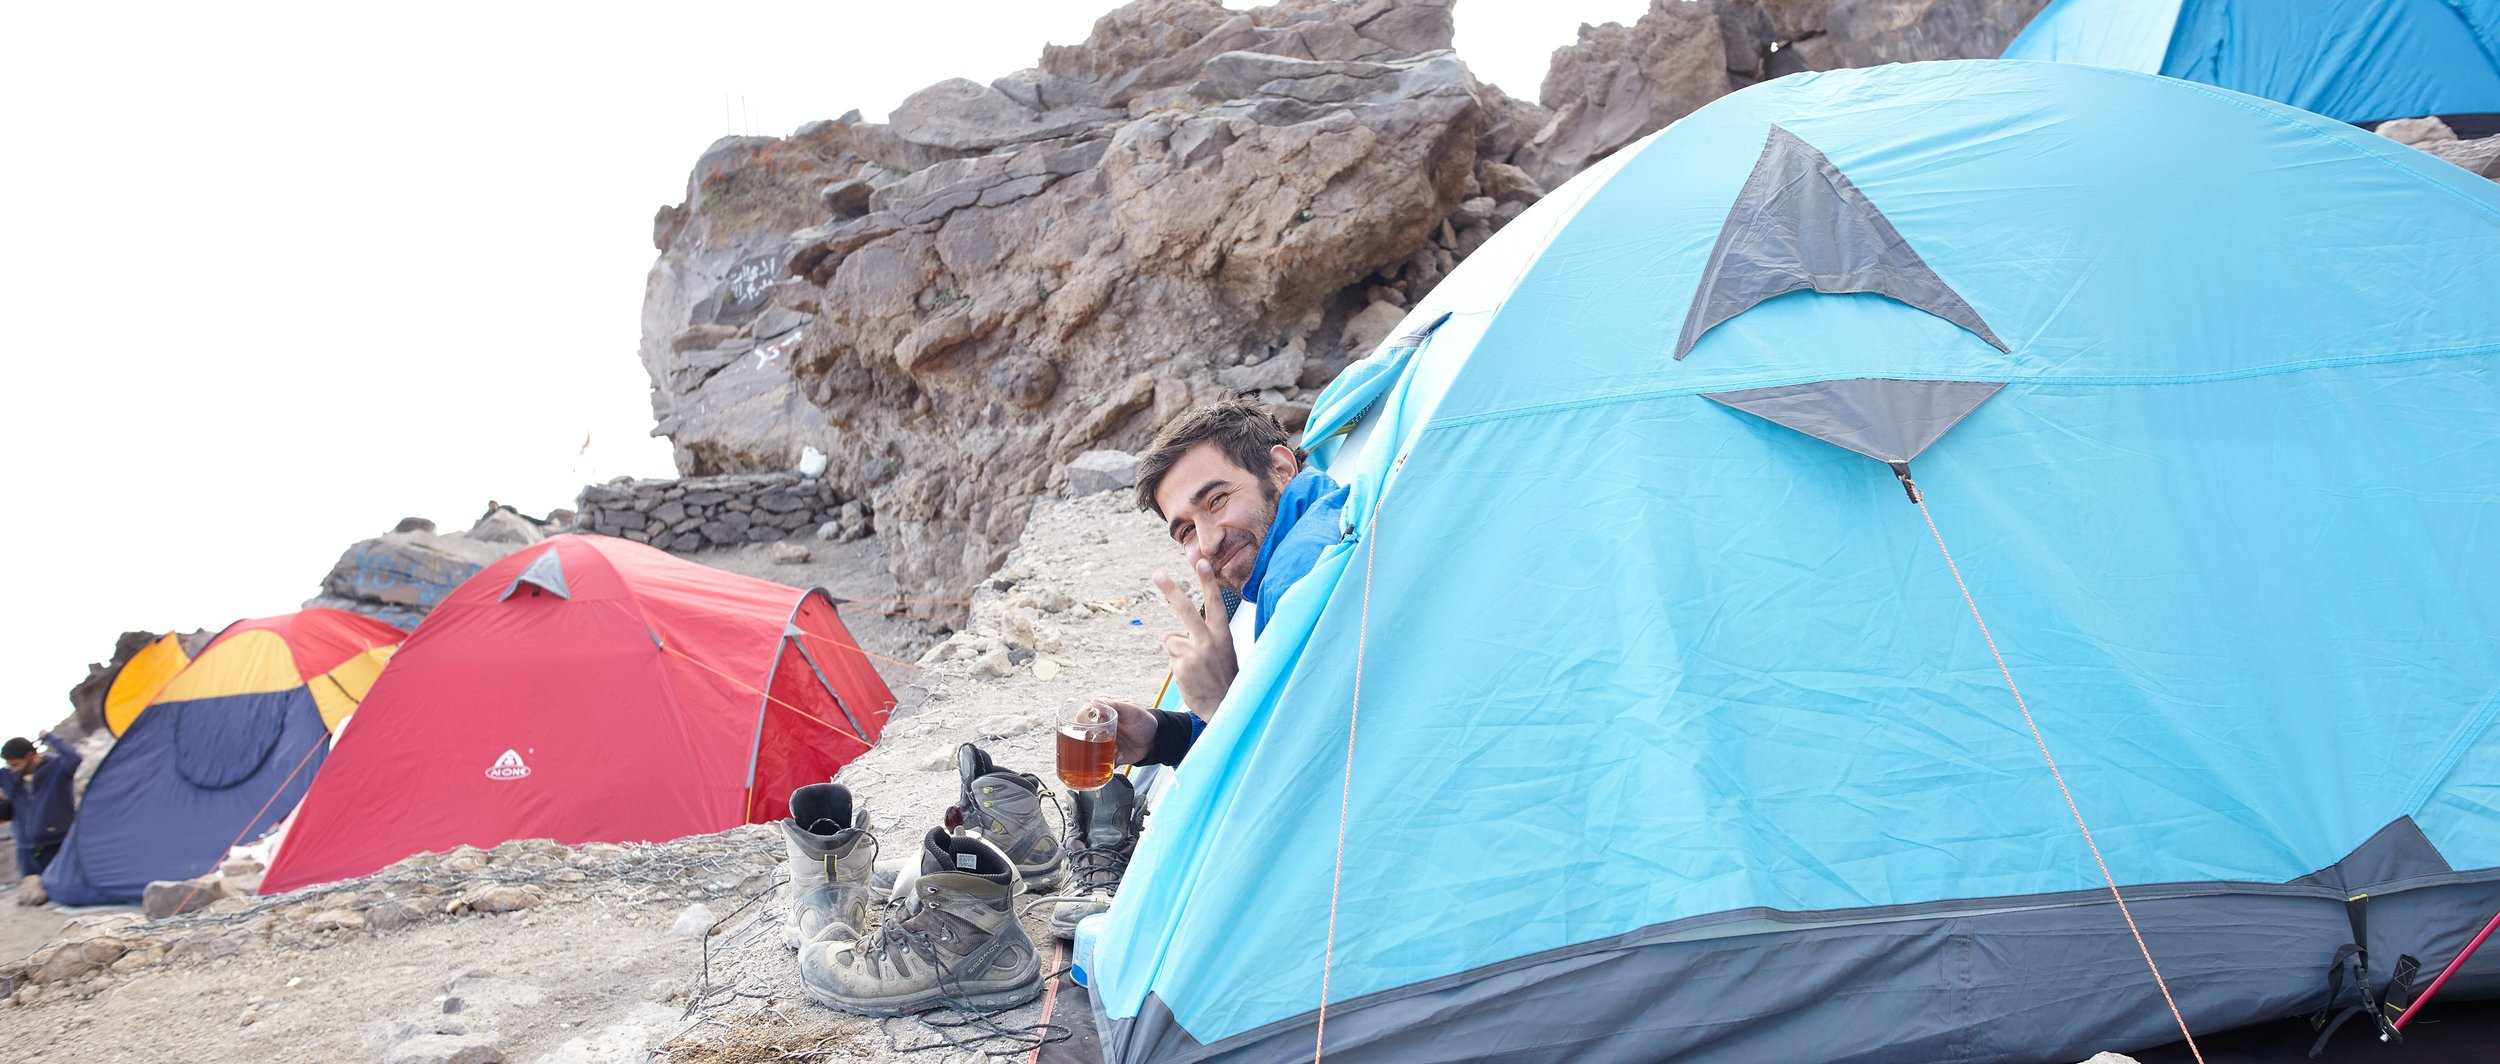 A friendly neighbor at Base Camp (4200m), Mt. Damavand, Iran